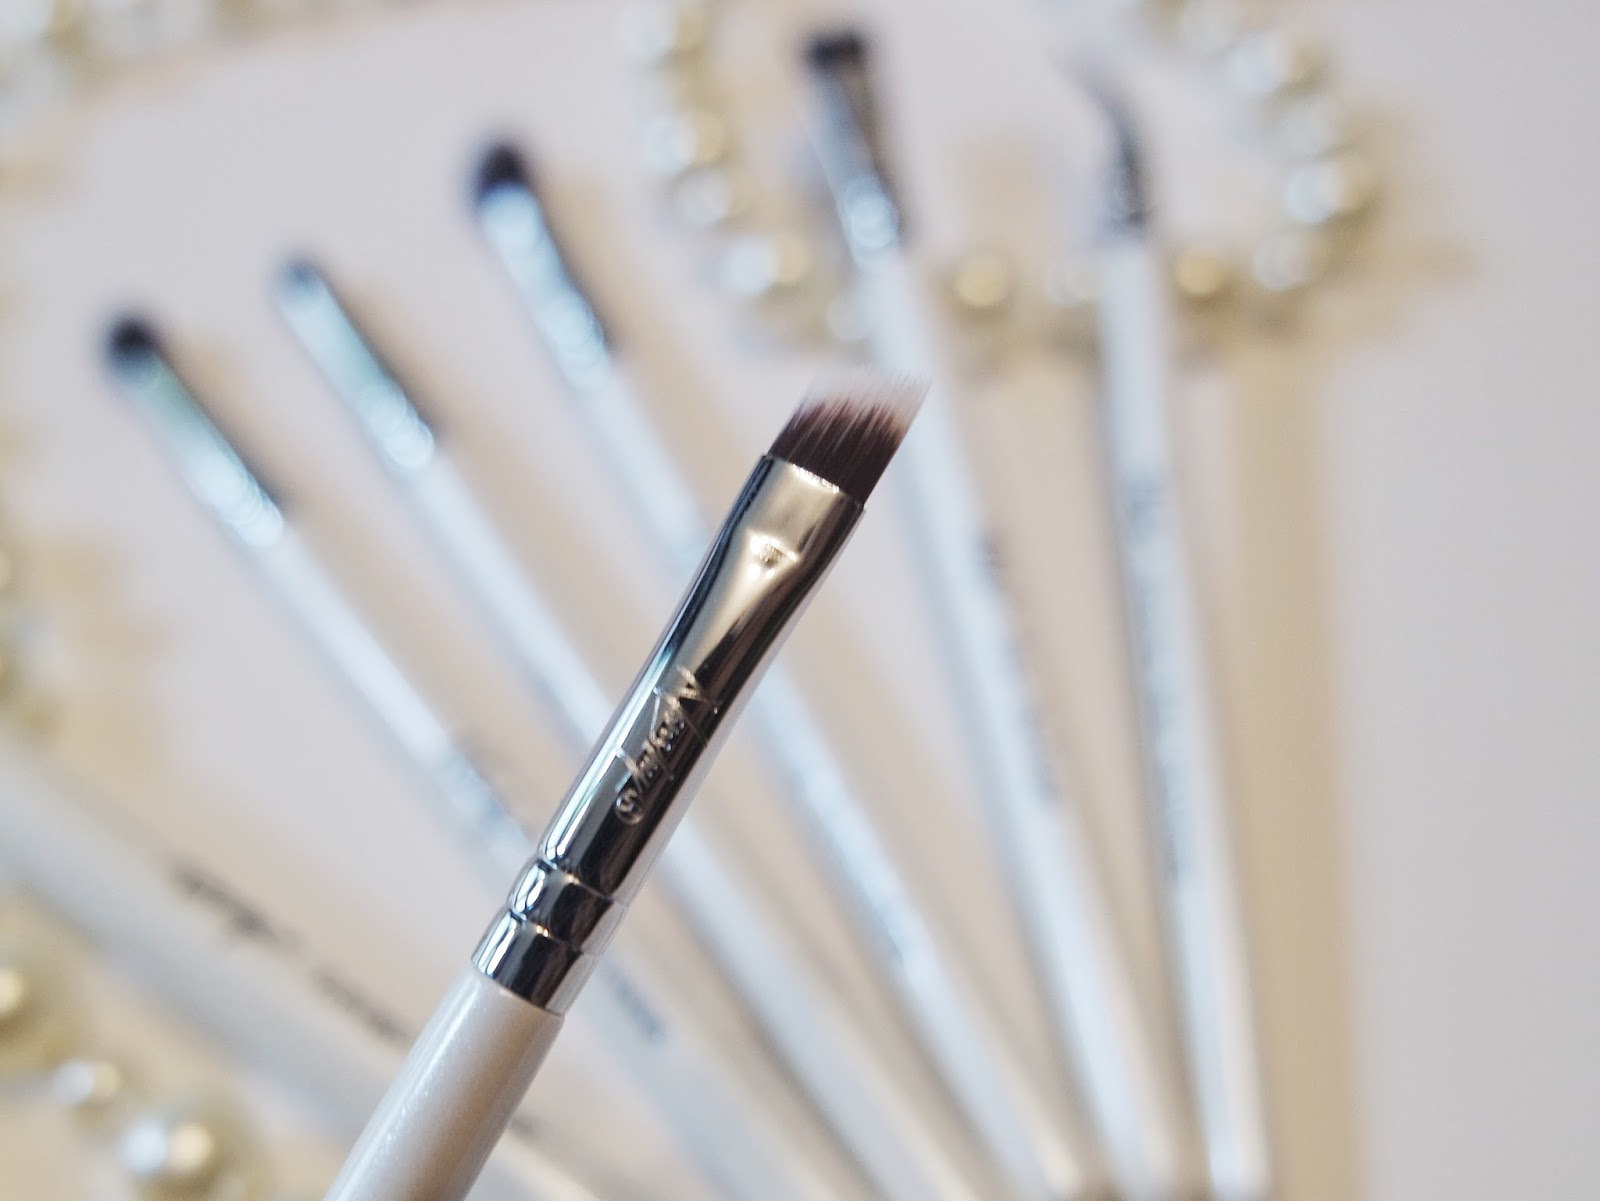 Nanshy Vegan Cruelty Free Makeup Brushes for Eyes